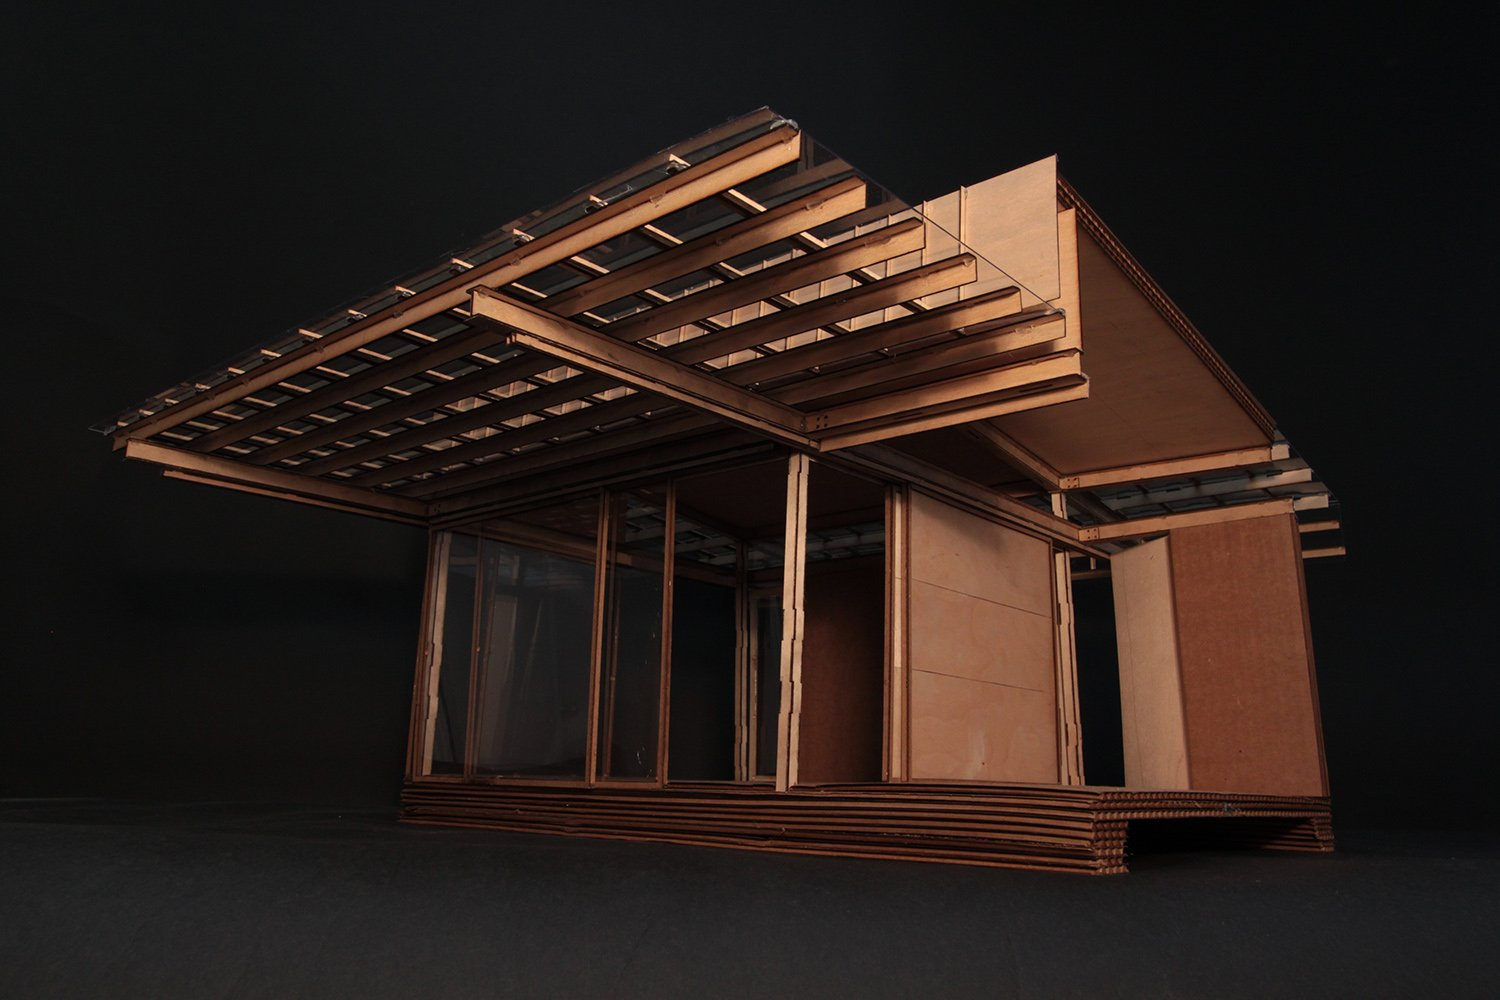 Design process model in wood and cardboard, detail of south side sun shade and solar panel structure. Anderson Anderson Architecture}